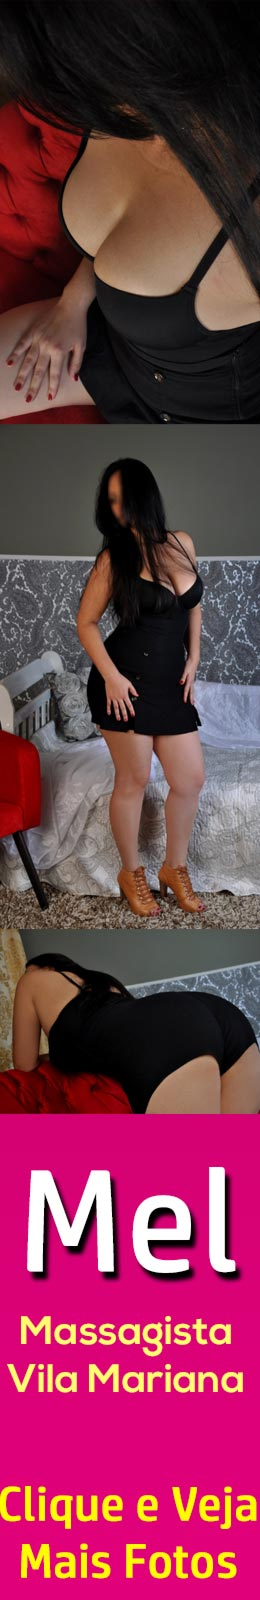 Massagista Mel – Massagem Sensual na Vila Mariana .F: (11) 96766-8805